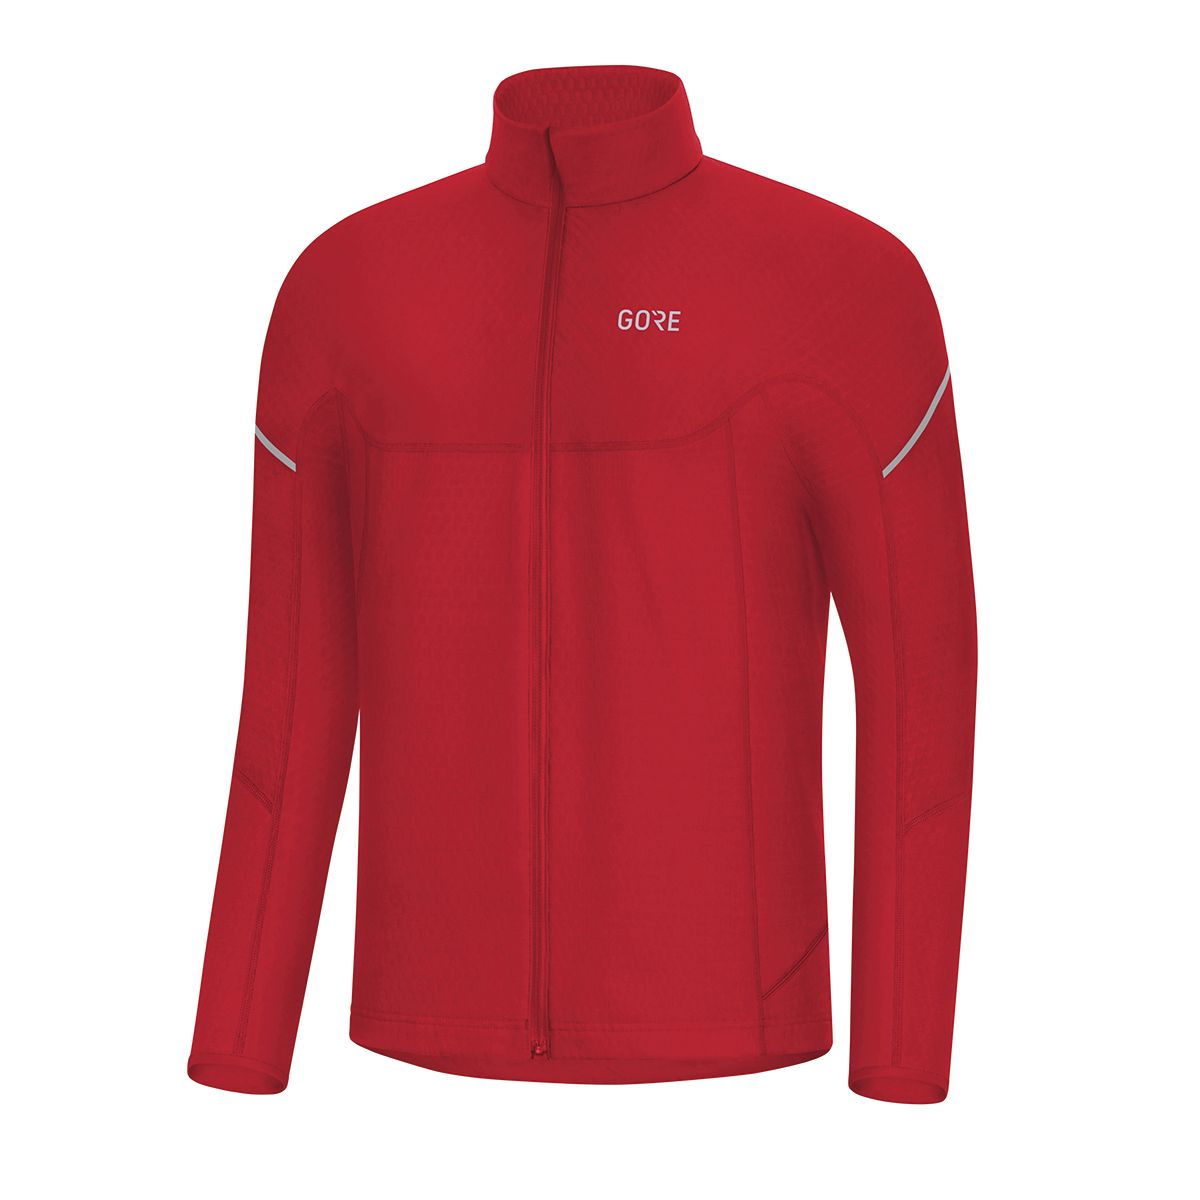 M THERMO LONG SLEEVE ZIP SHIRT